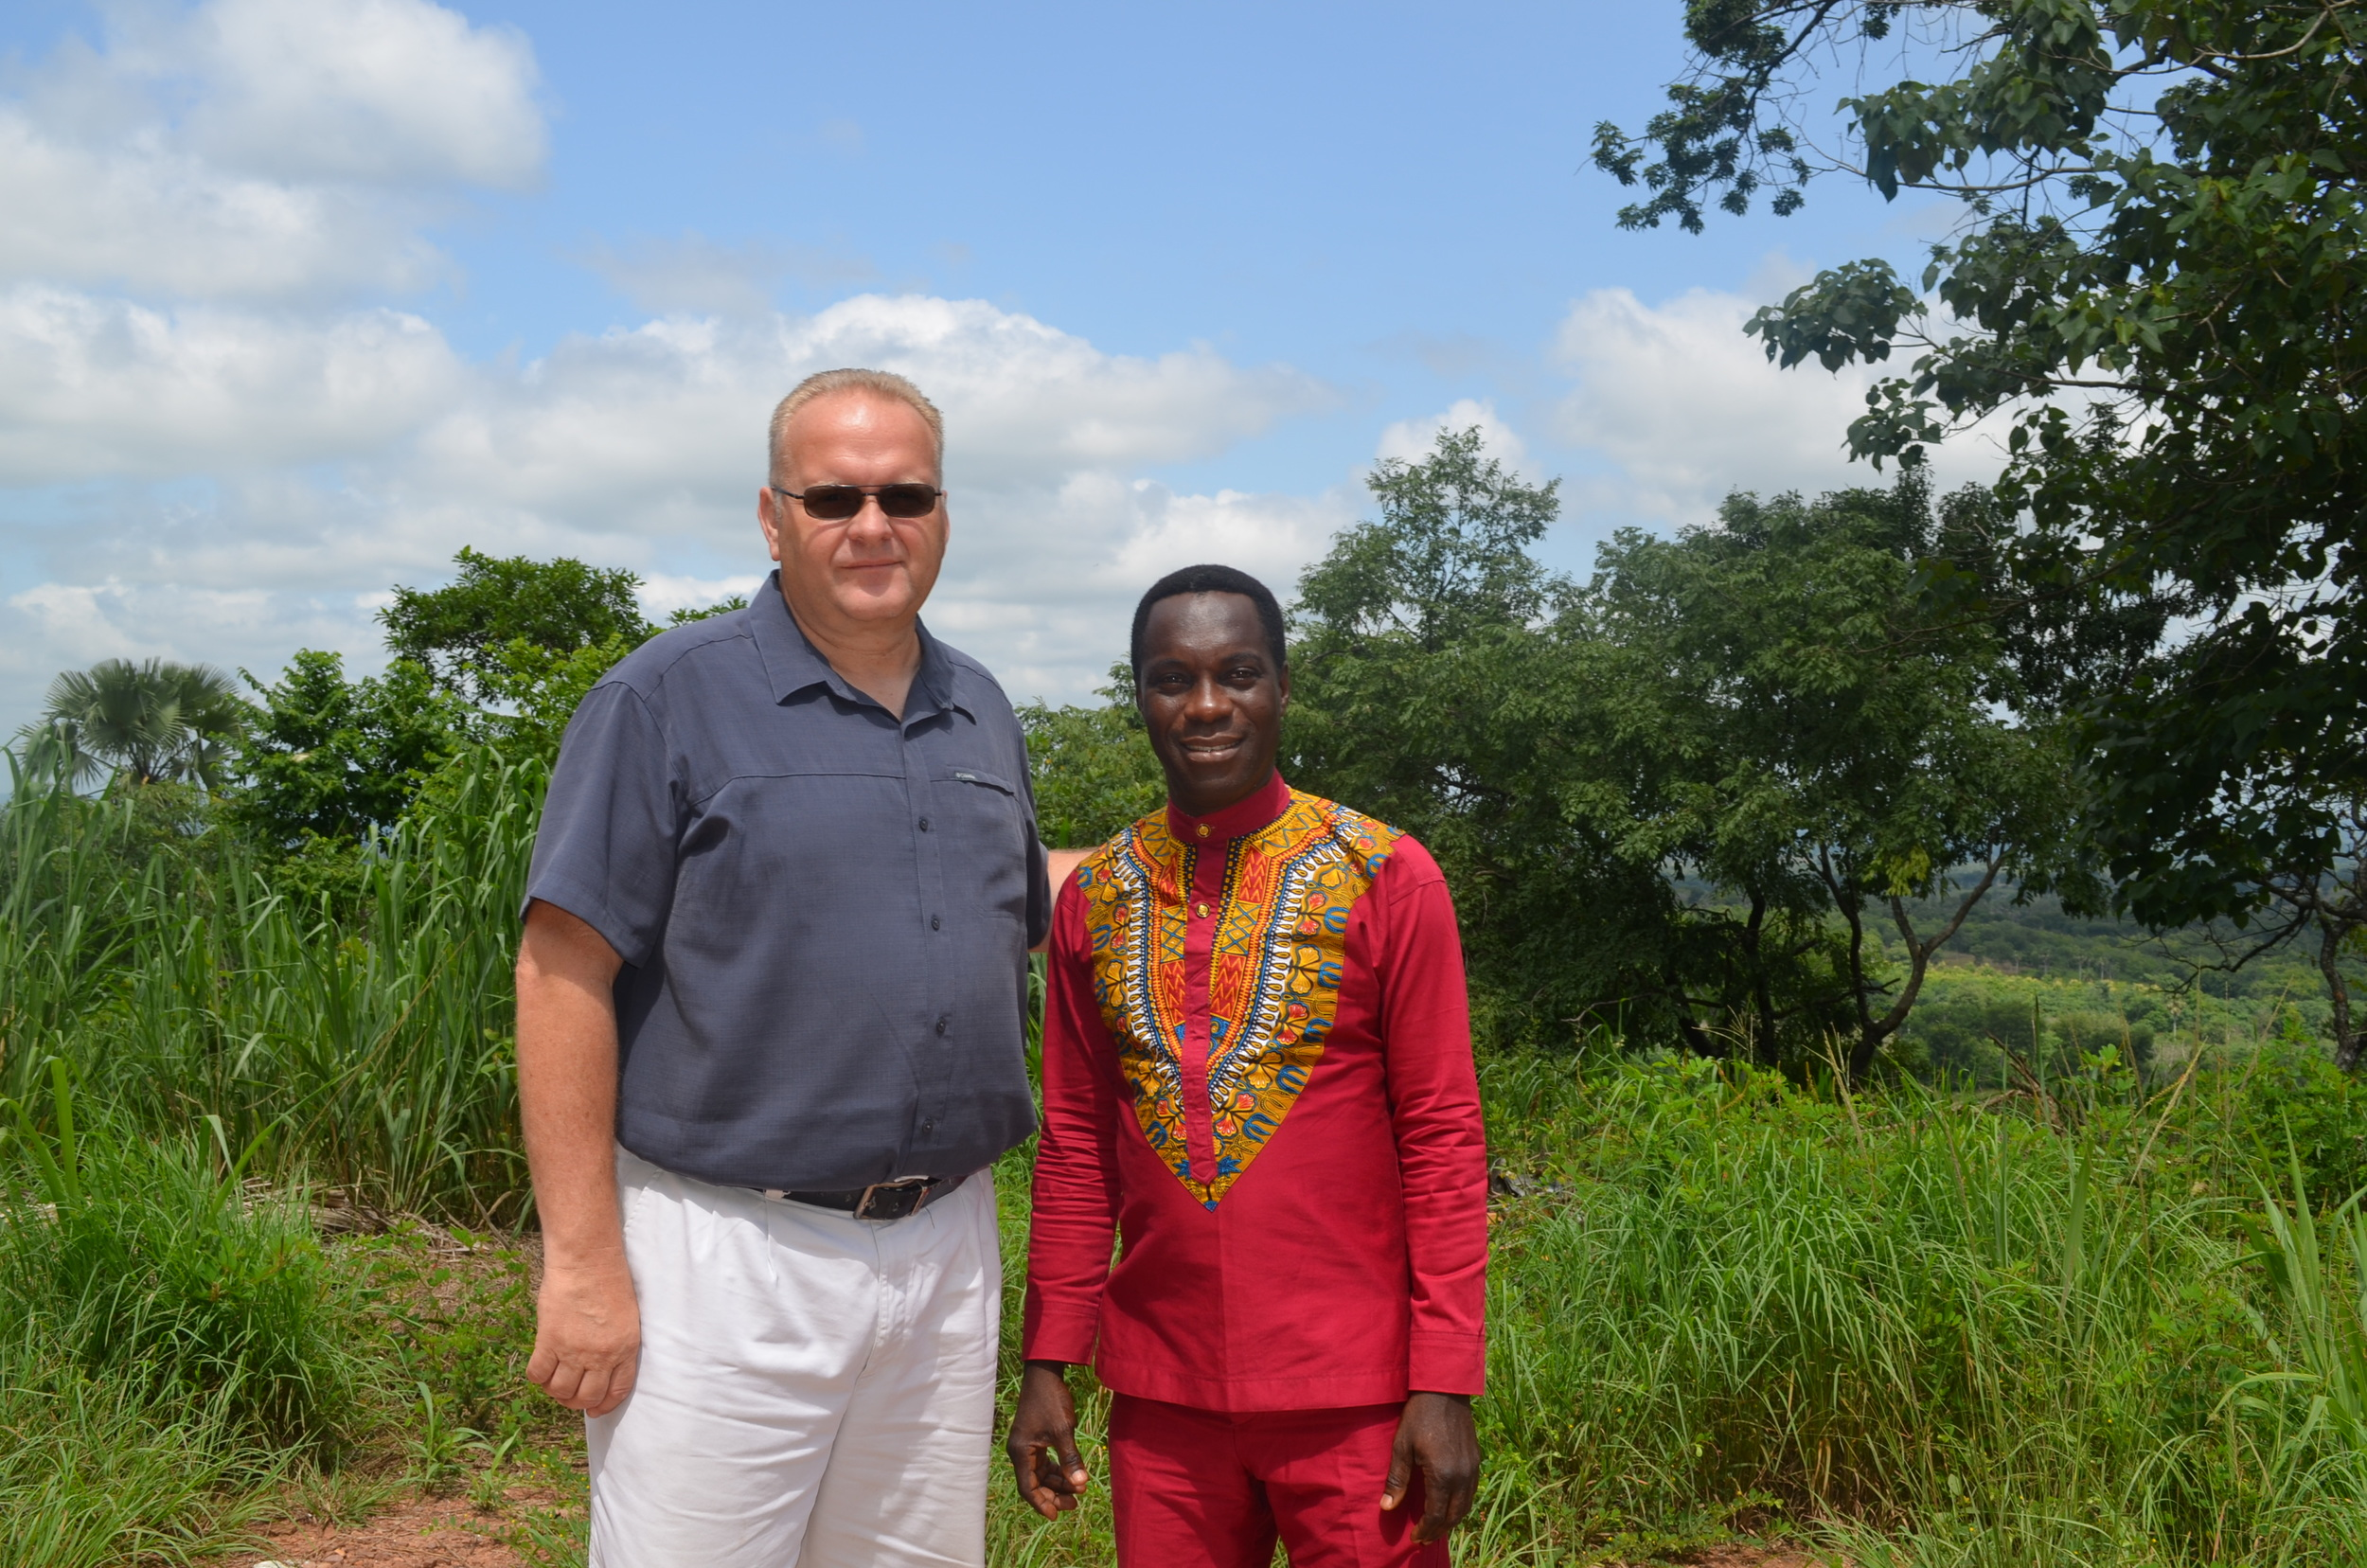 Brother Jeff and Brother Paul taking a picture on our way to Atebubu where Brother Paul lives.